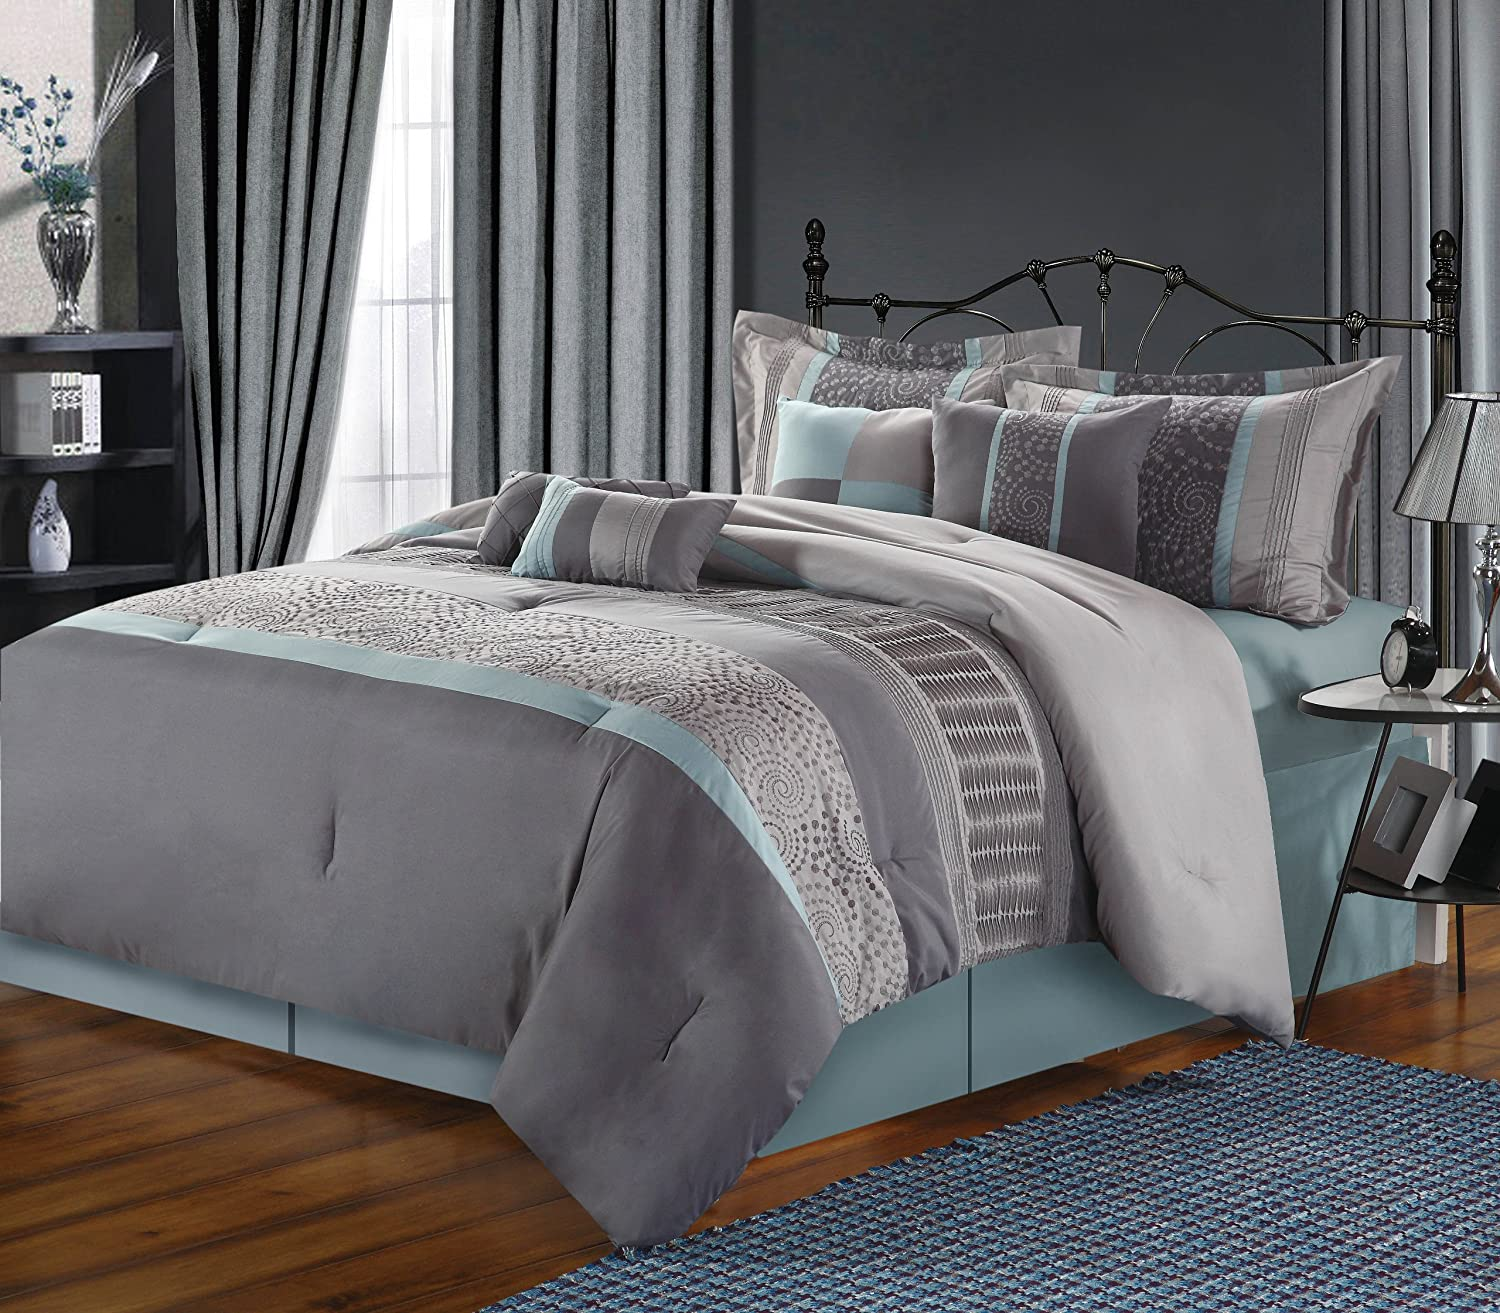 Perfect Blue and Gray Bedding Sets 1500 x 1312 · 390 kB · jpeg